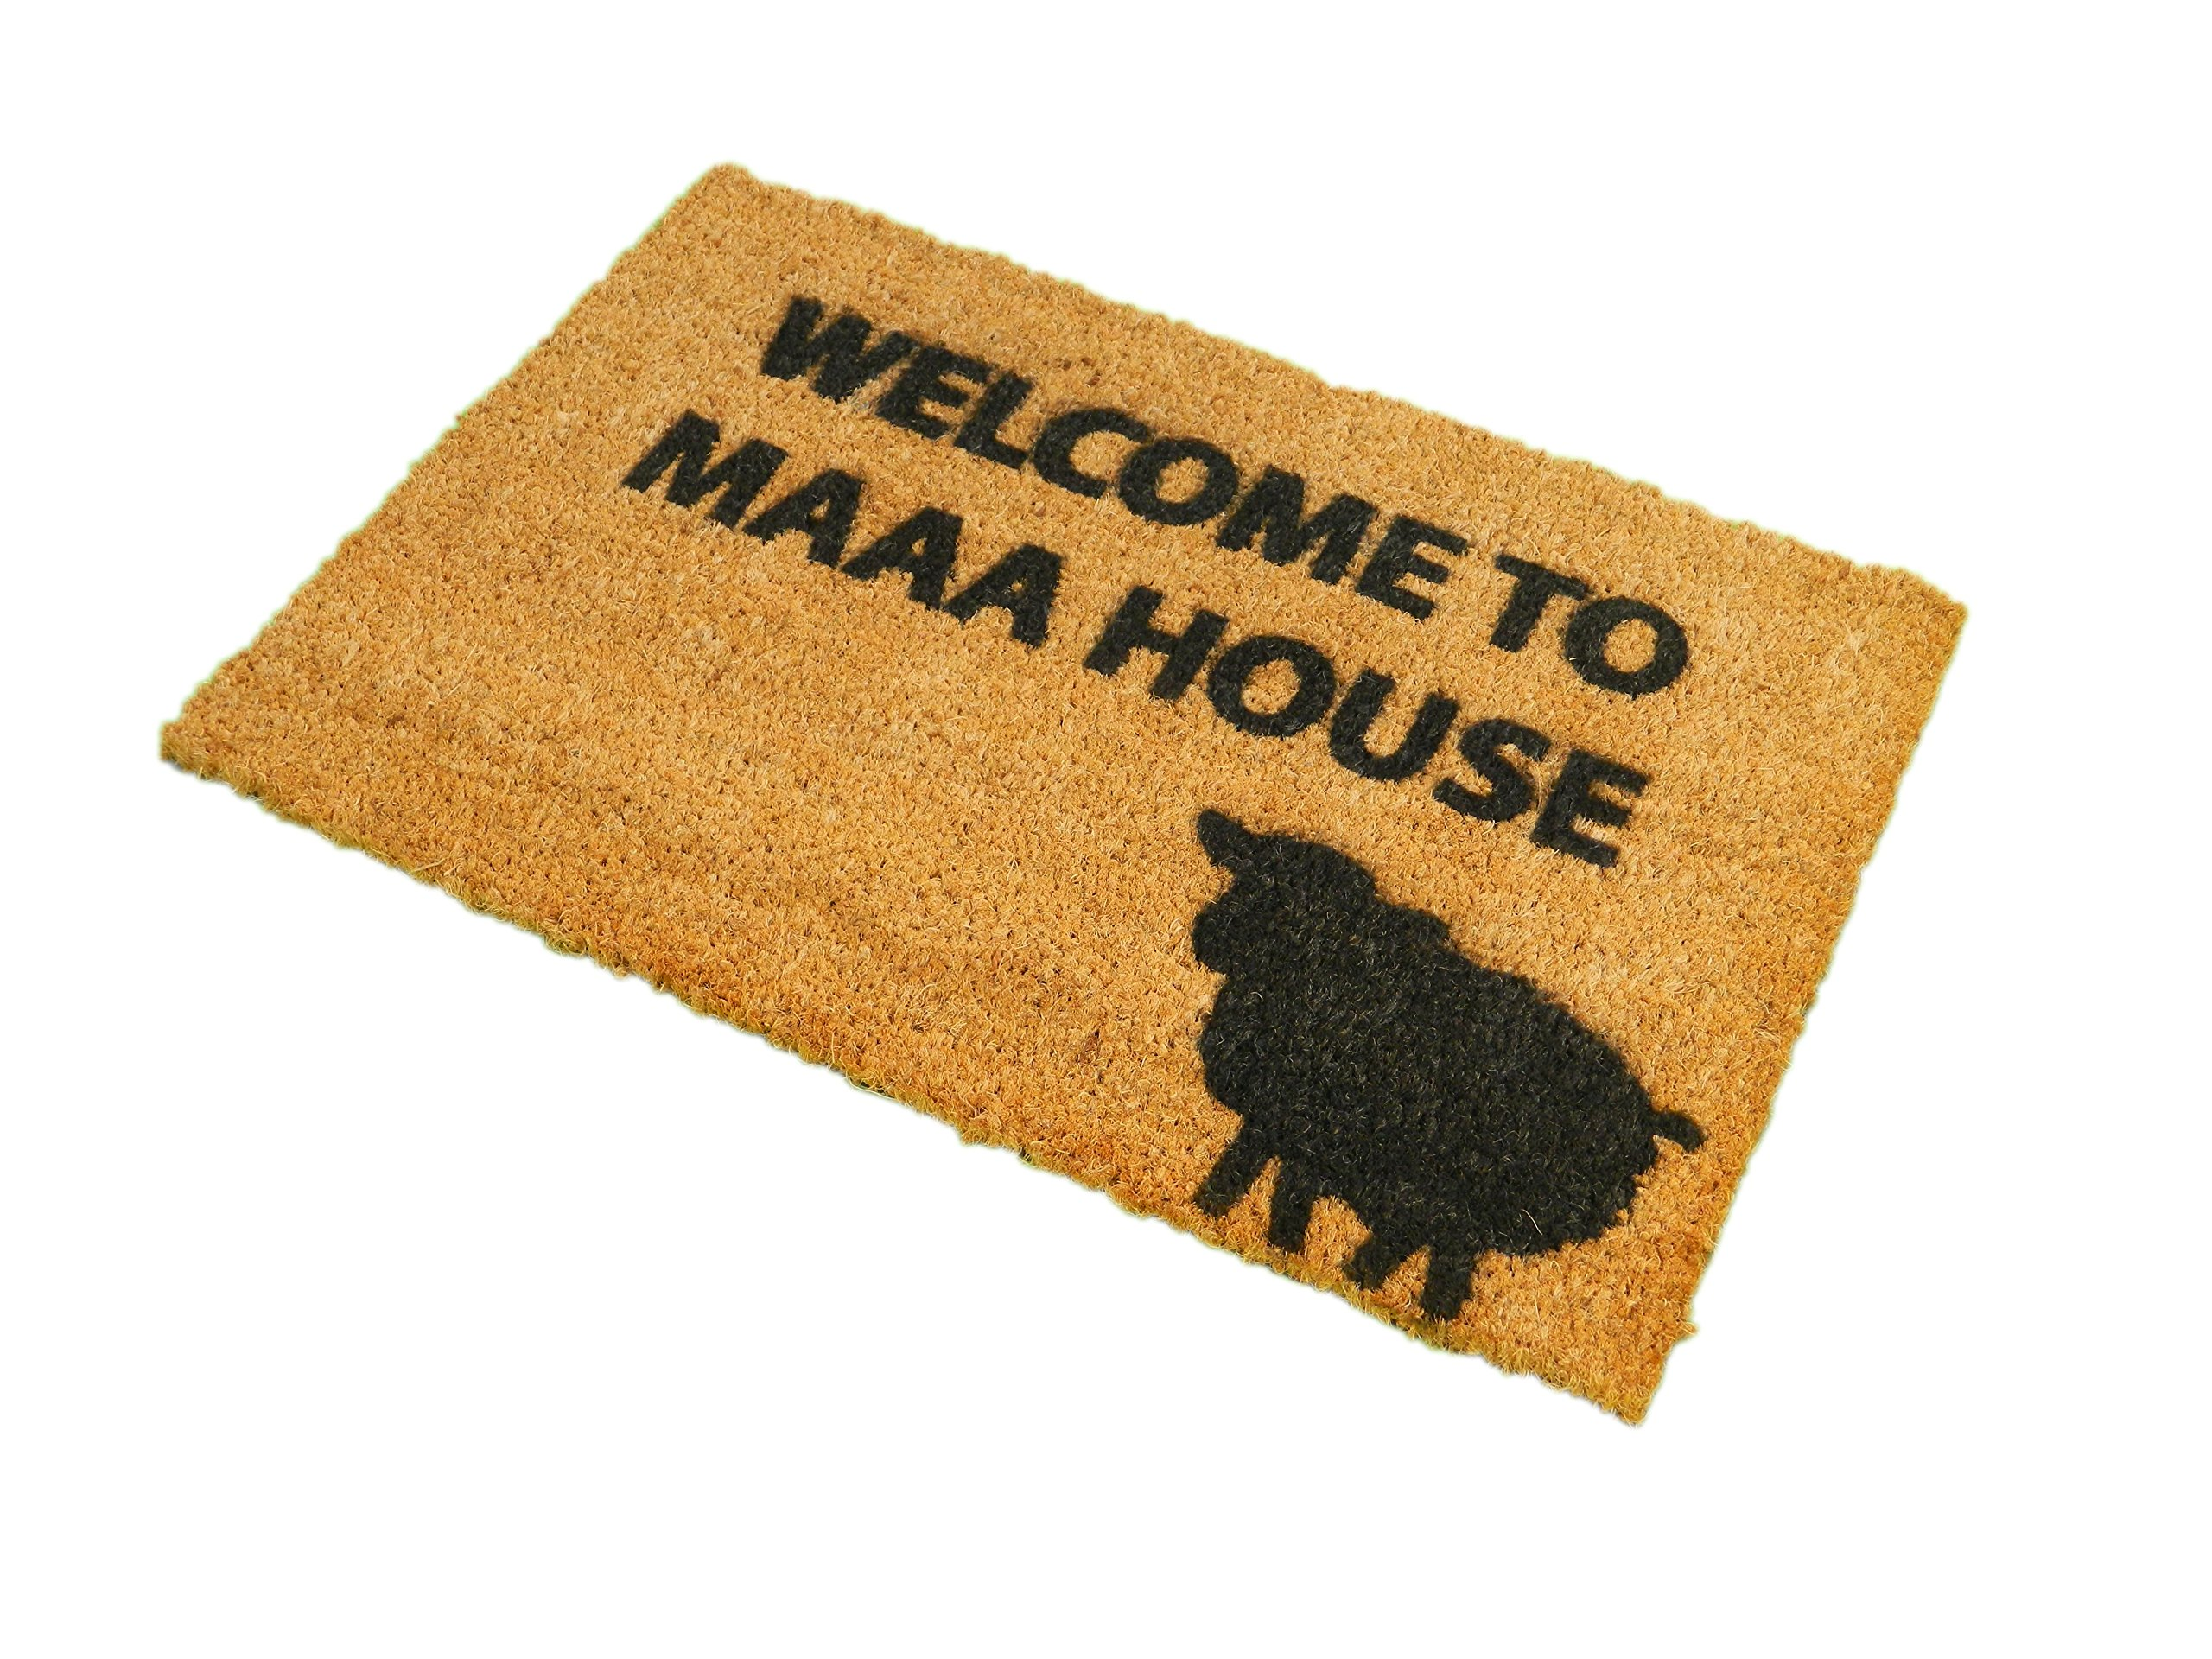 CKB Ltd Welcome To Maaa House Novelty Doormat Unique Doormats Front/Back Door Mats Made With A Non-Slip Pvc Backing - Natural Coir - Indoor & Outdoor